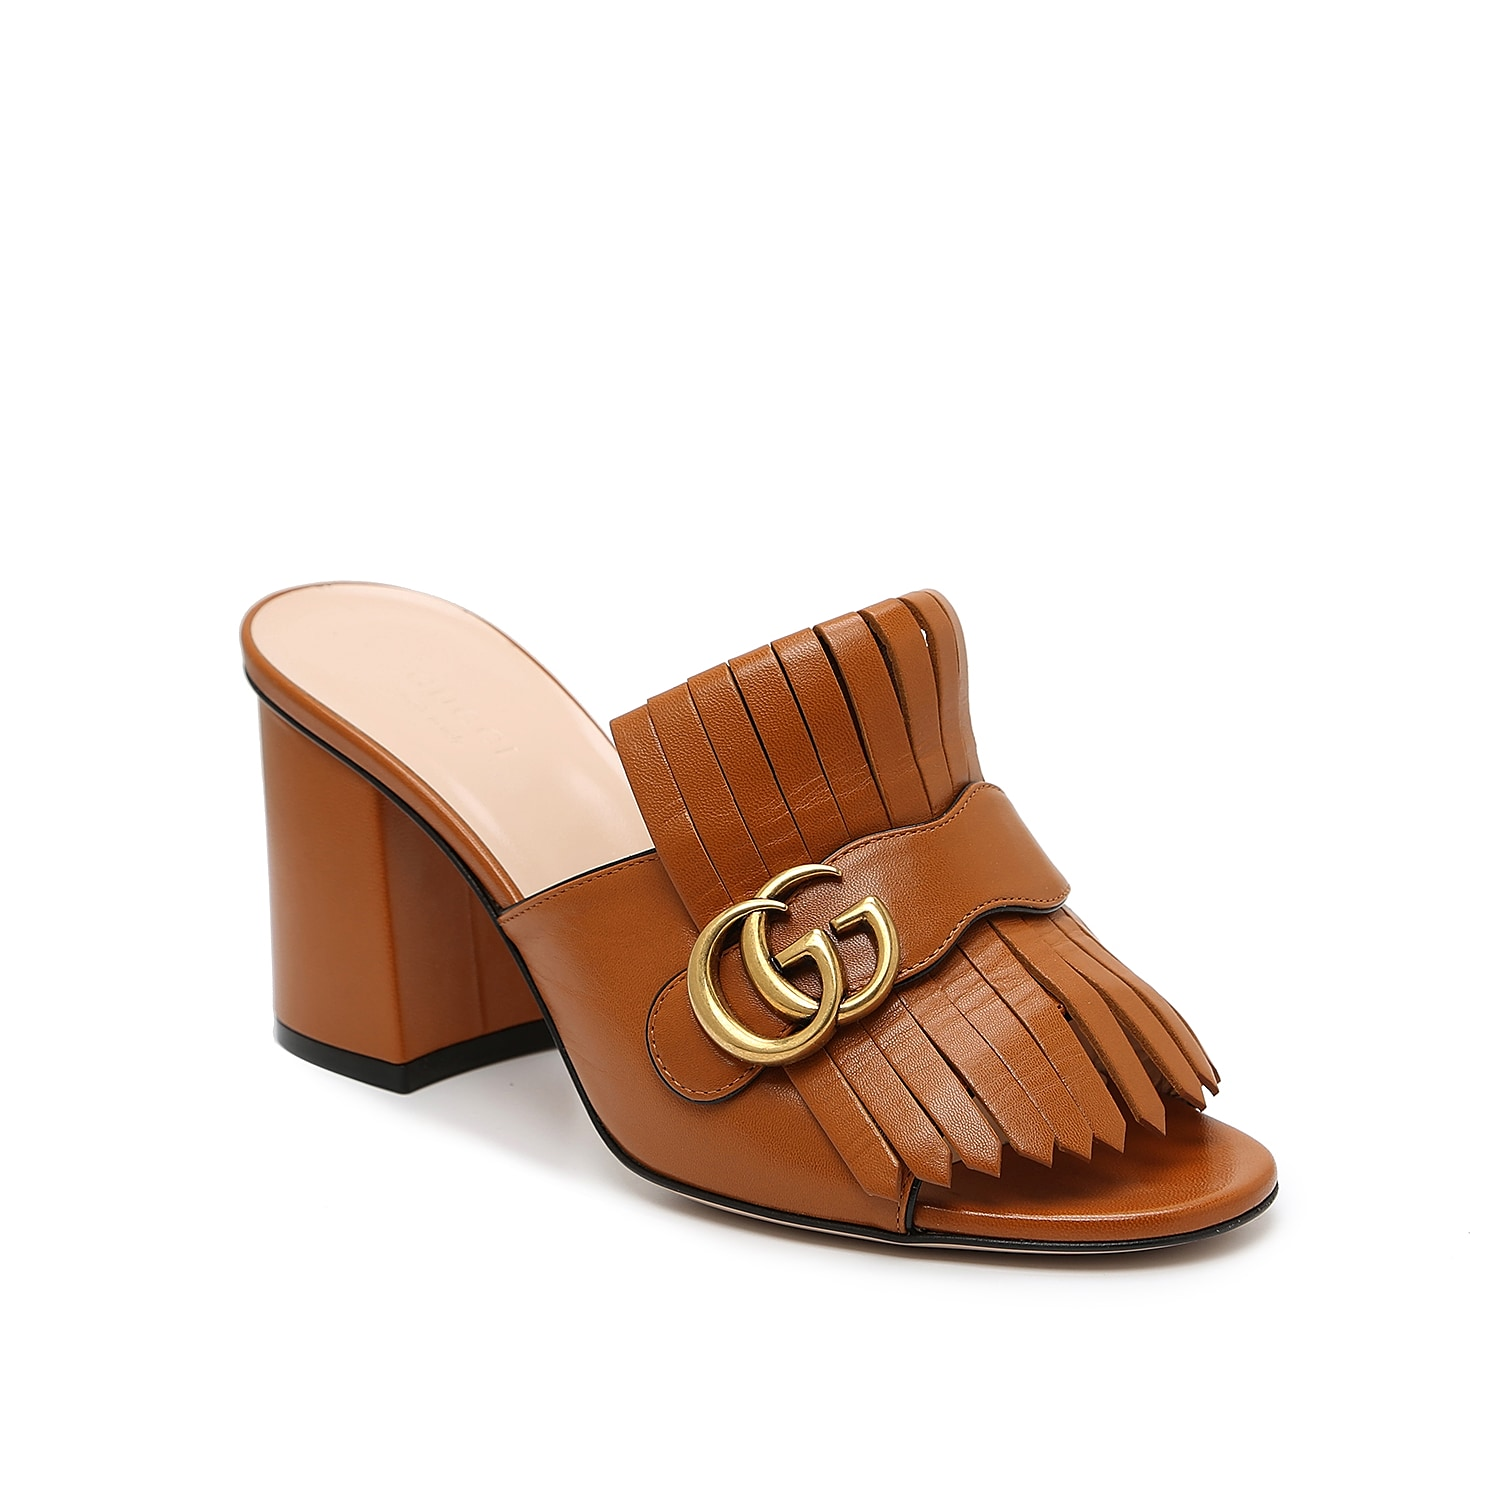 An elegant blend of upscale dressing and sandal season, these Marmont 55 slides from Gucci feel as professional as they are playful. Double G hardware with an antique gild decorates folded kiltie fringe that drapes over the vamp, while an open toe and backless styling make this a charming pair to slip on at a moment\\\'s notice.   Made in Italy from carefully selected materials. To extend product life, protect from direct light, heat, and rain. Fill shoe with tissue paper to help maintain the shape and absorb humidity. Store in the provided flannel bag and structured shoe box.